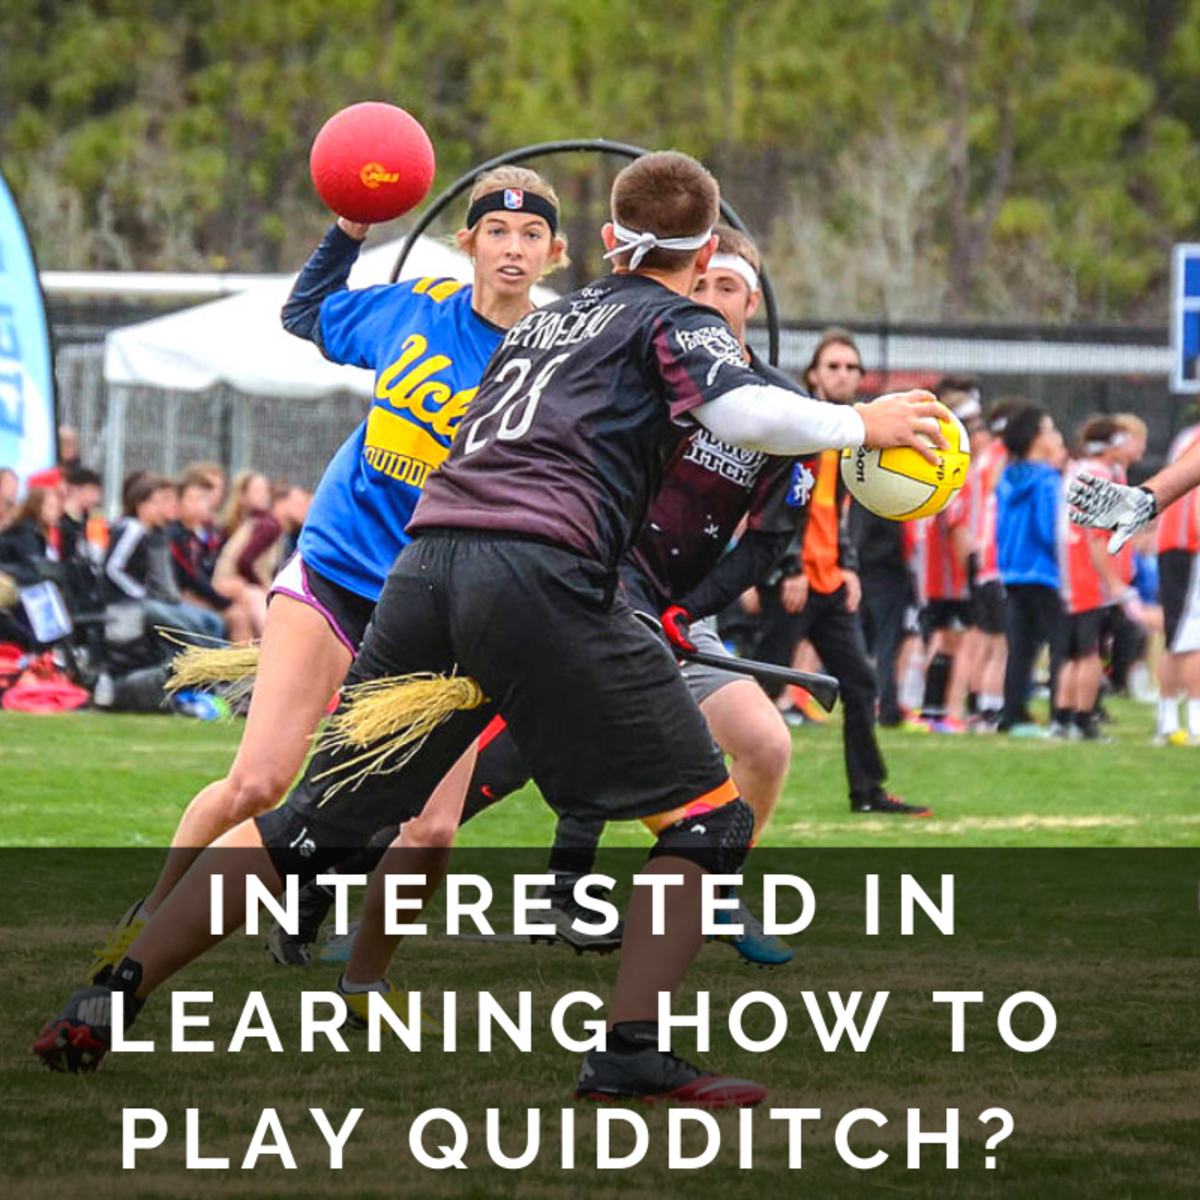 Here's a beginners guide to quidditch!